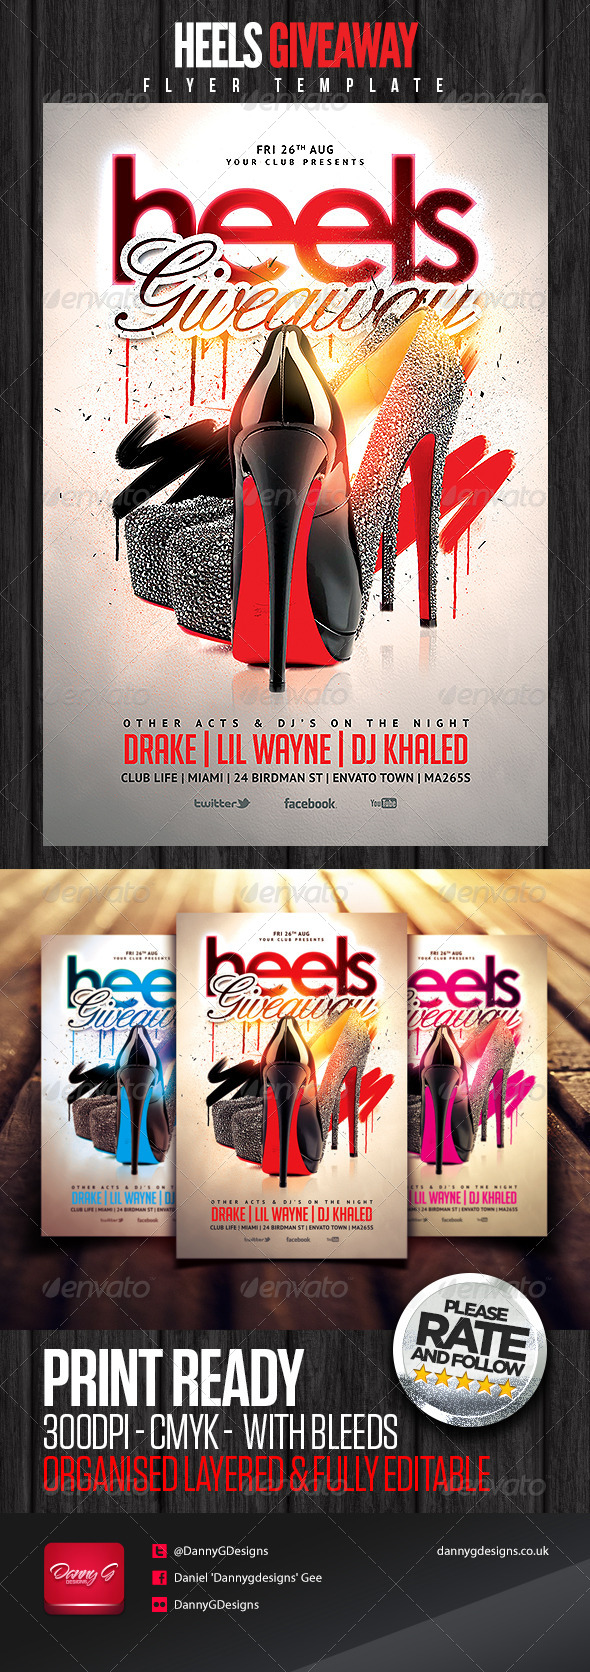 Heels Giveaway Flyer Template - Clubs & Parties Events